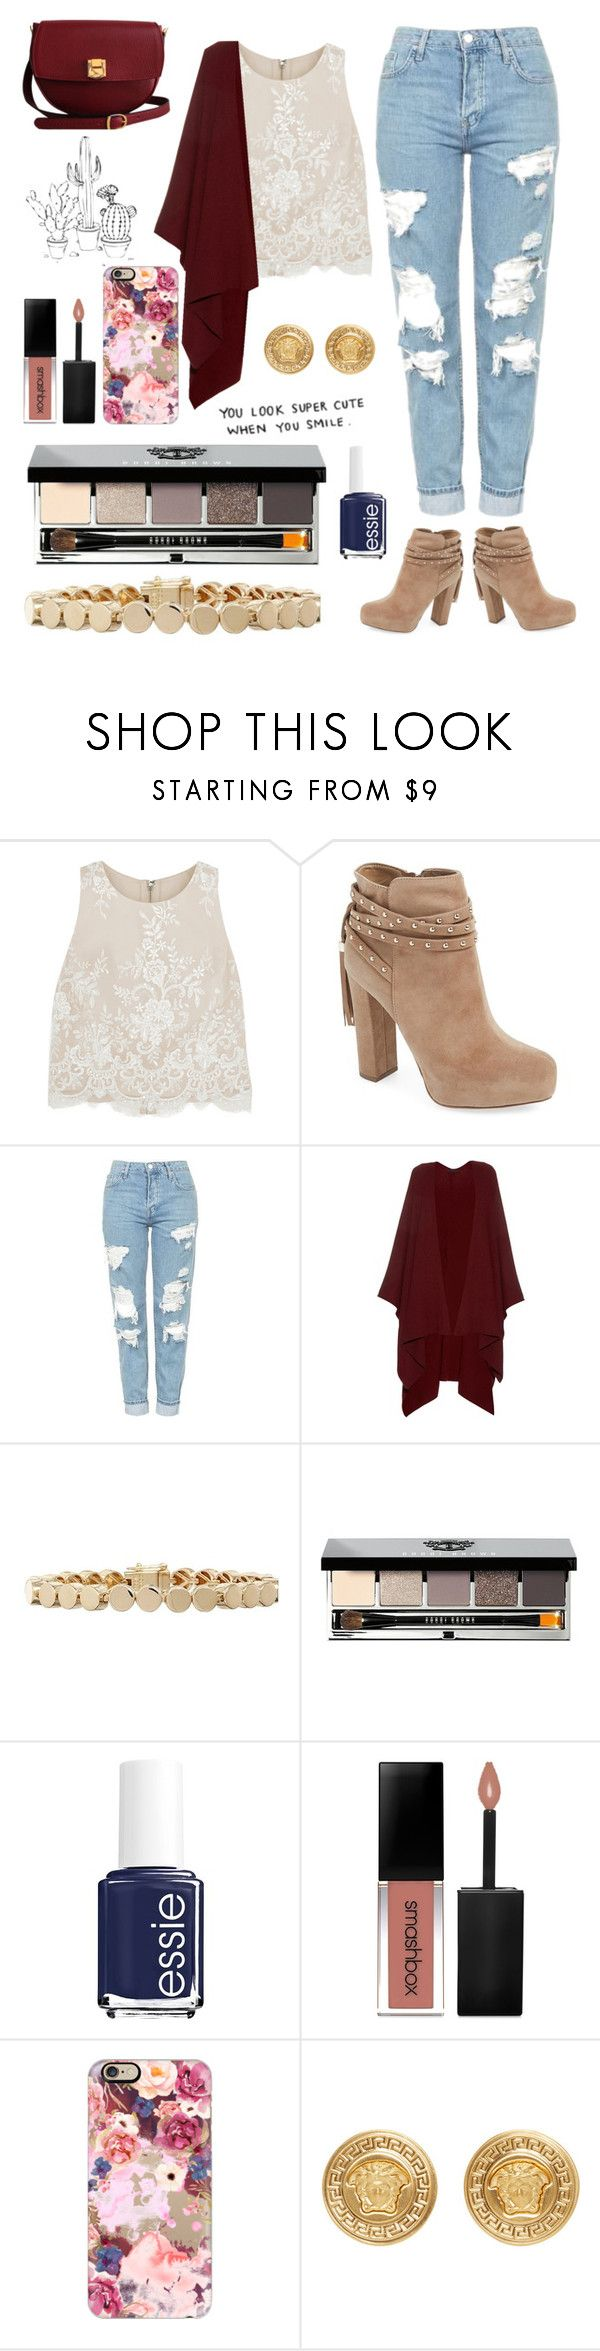 """Lovin Smooth"" by ashleyk0214 on Polyvore featuring Alice + Olivia, Jessica Simpson, Topshop, The Row, Eddie Borgo, Bobbi Brown Cosmetics, Essie, Smashbox, Casetify and Versace"